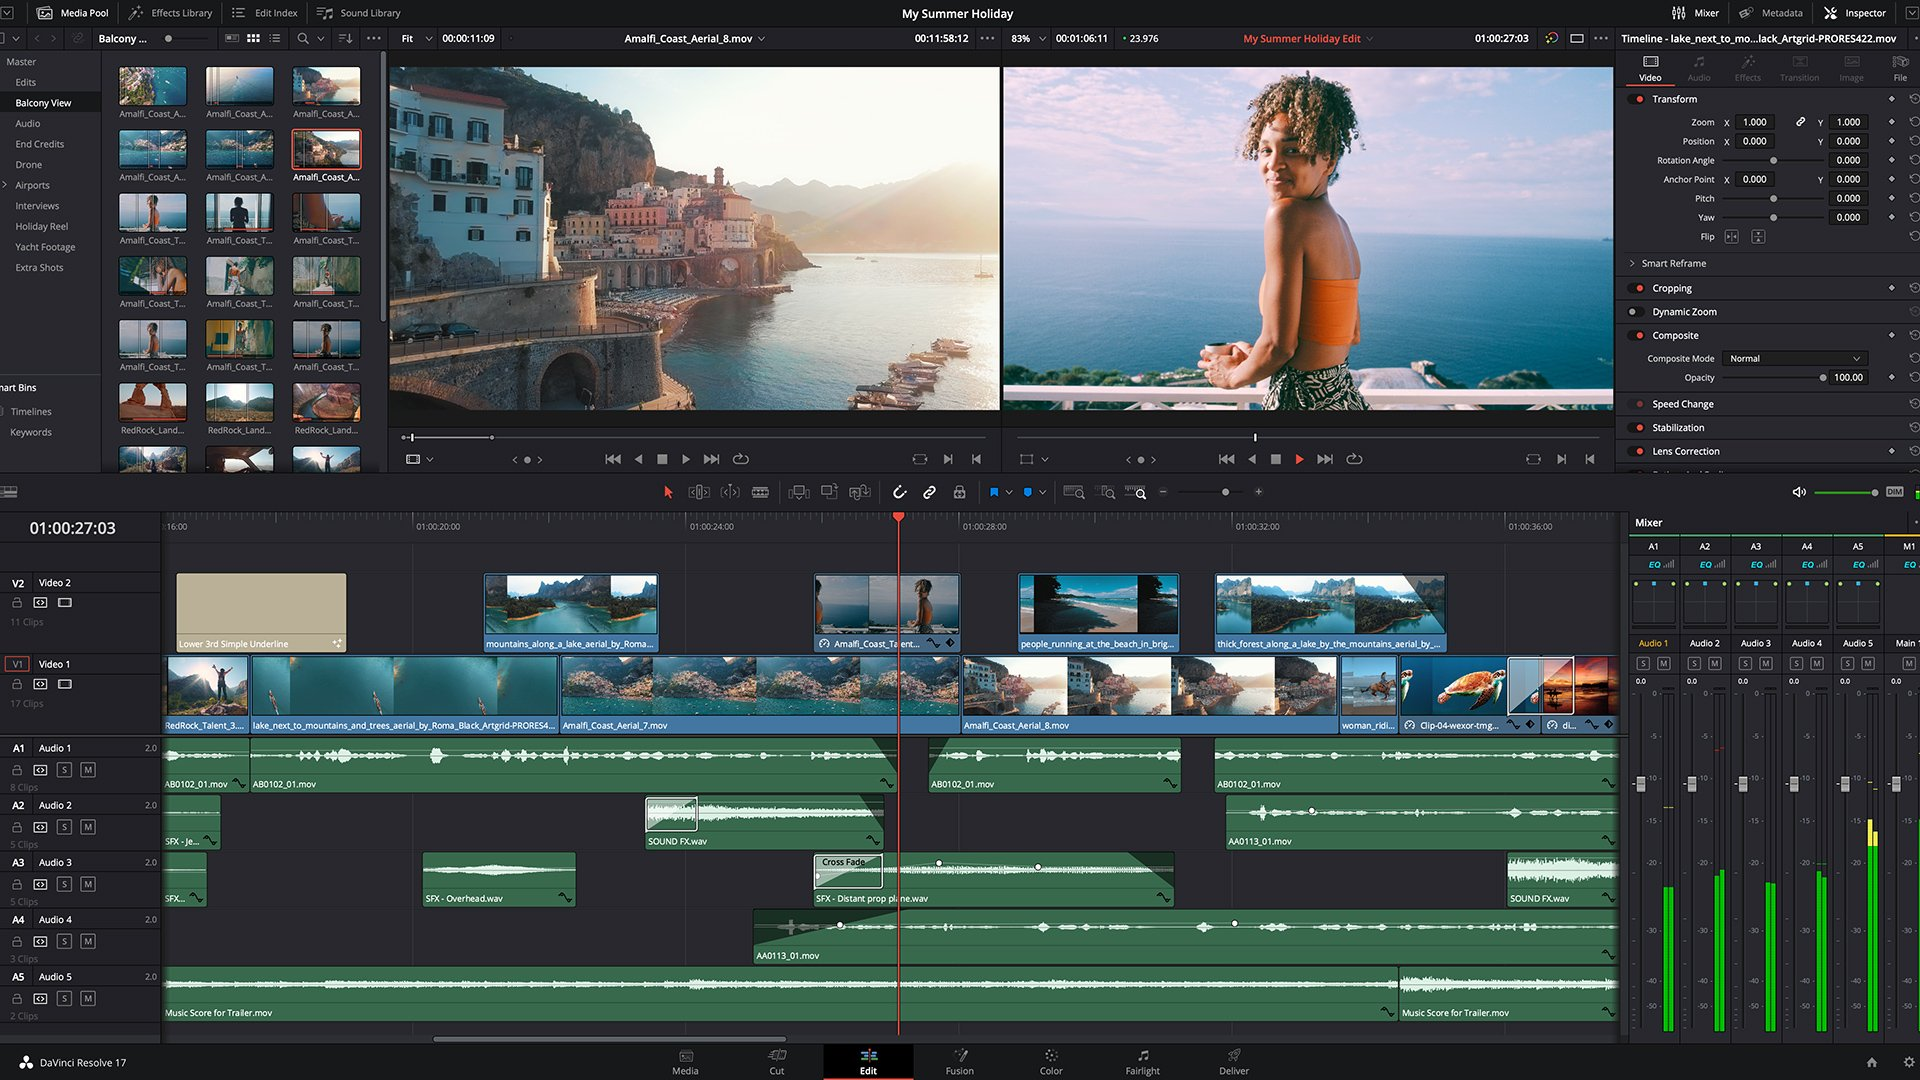 DaVinci Resolve 17 Edit page. Image: Blackmagic Design.